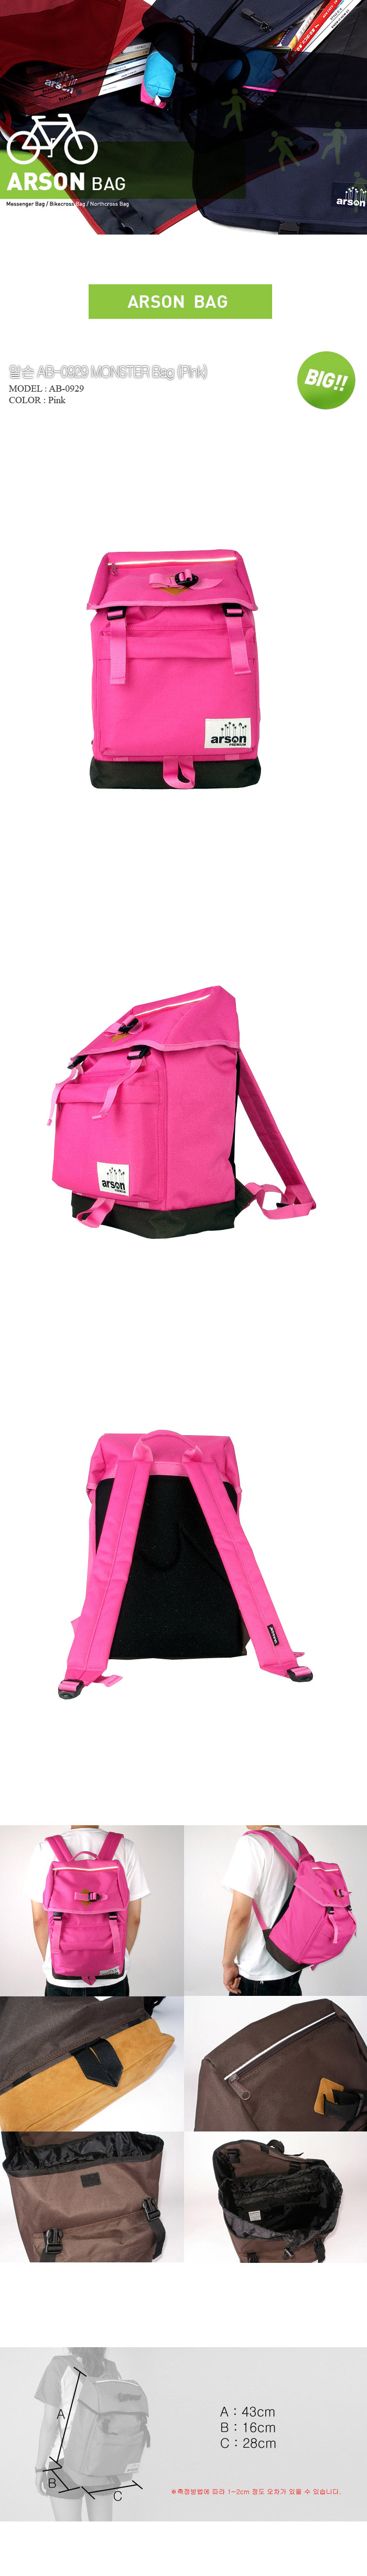 [ ARSON ] AB-0929 (Pink)/Backpack School Bag